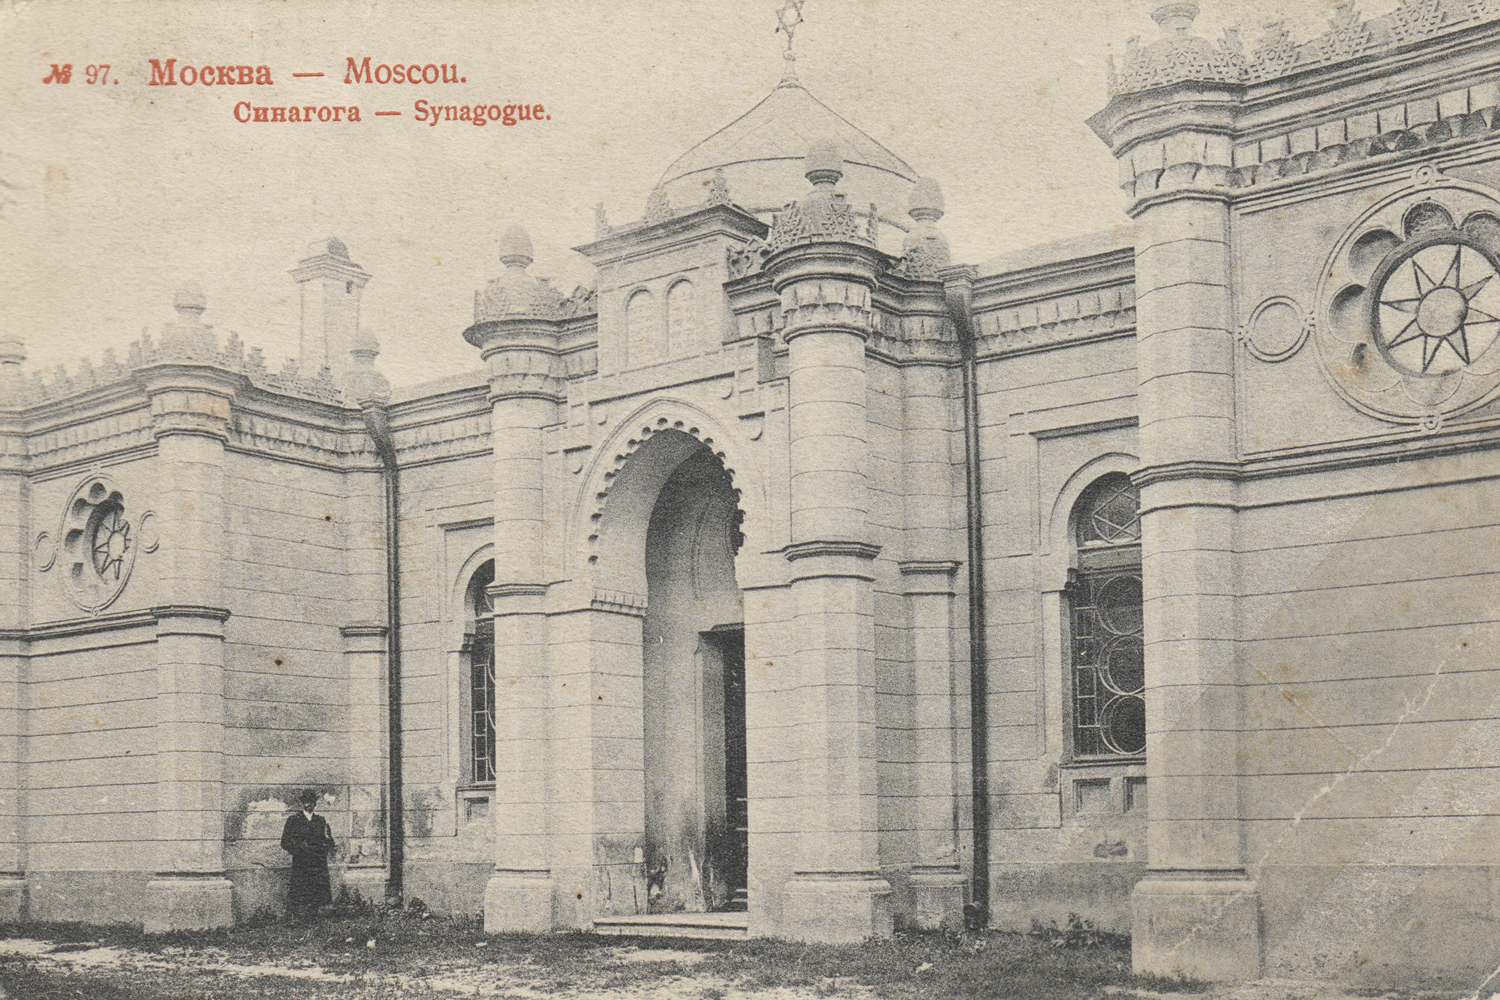 Photograph of synagogue in Moscow